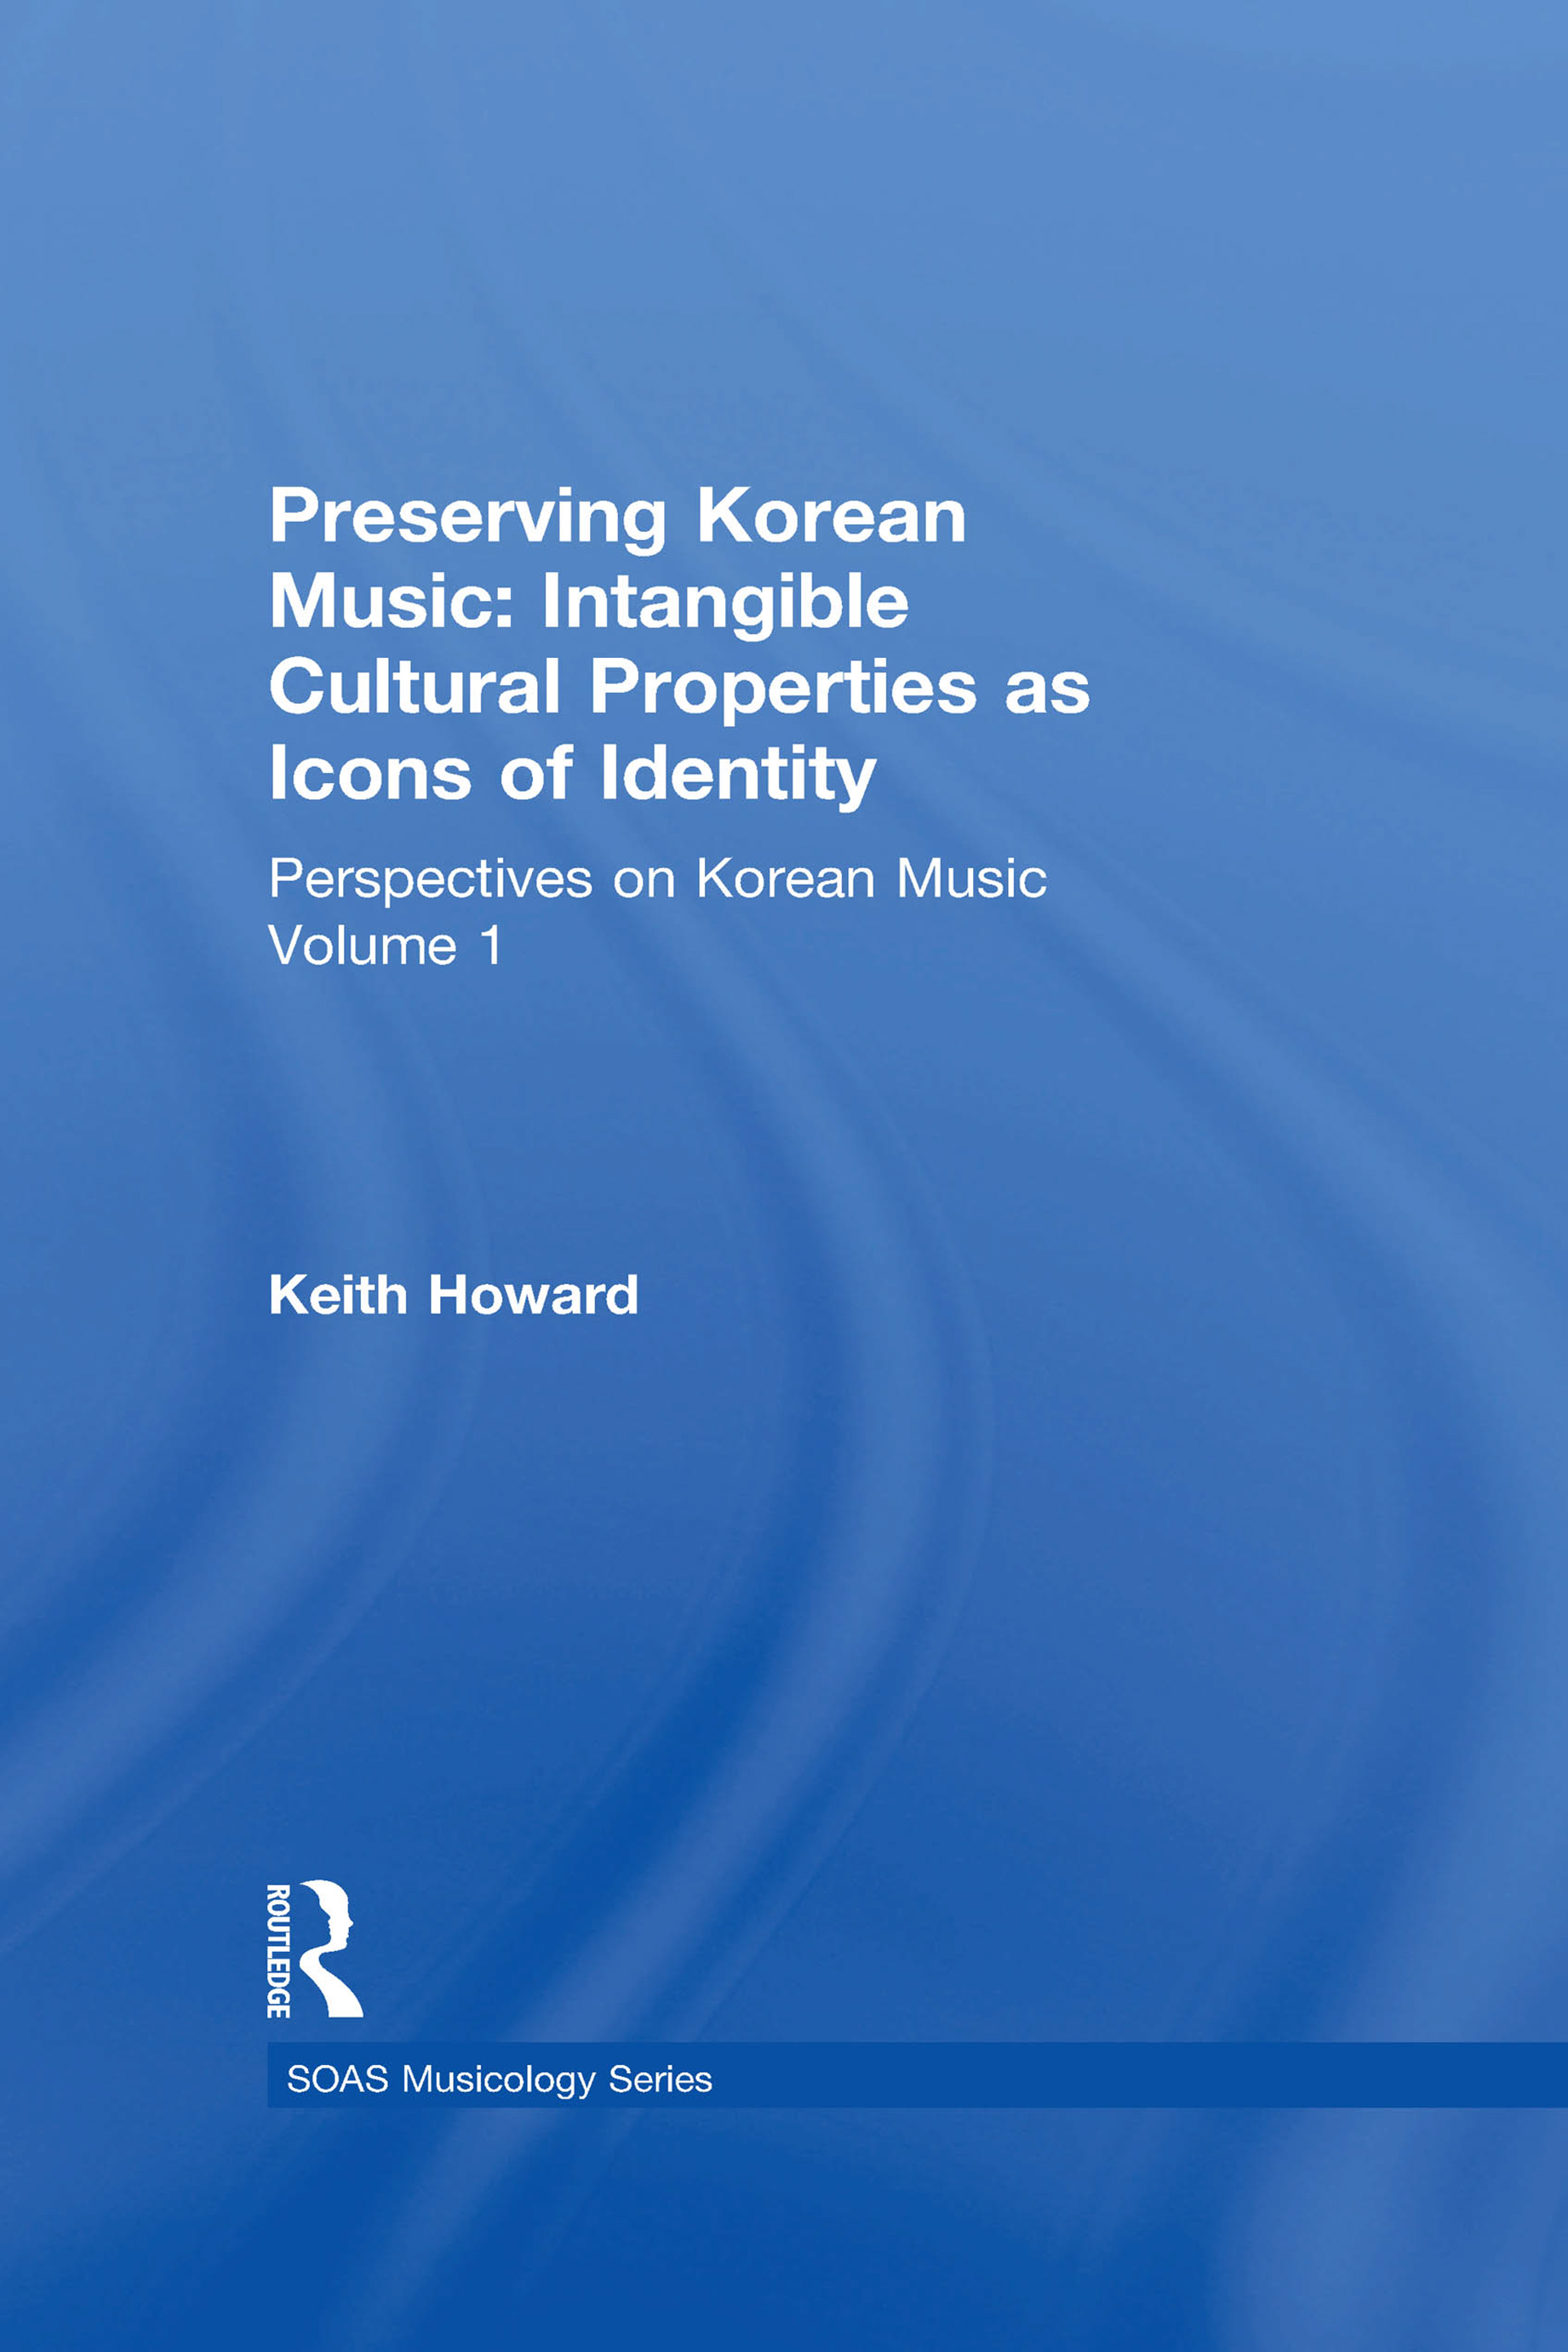 Perspectives on Korean Music